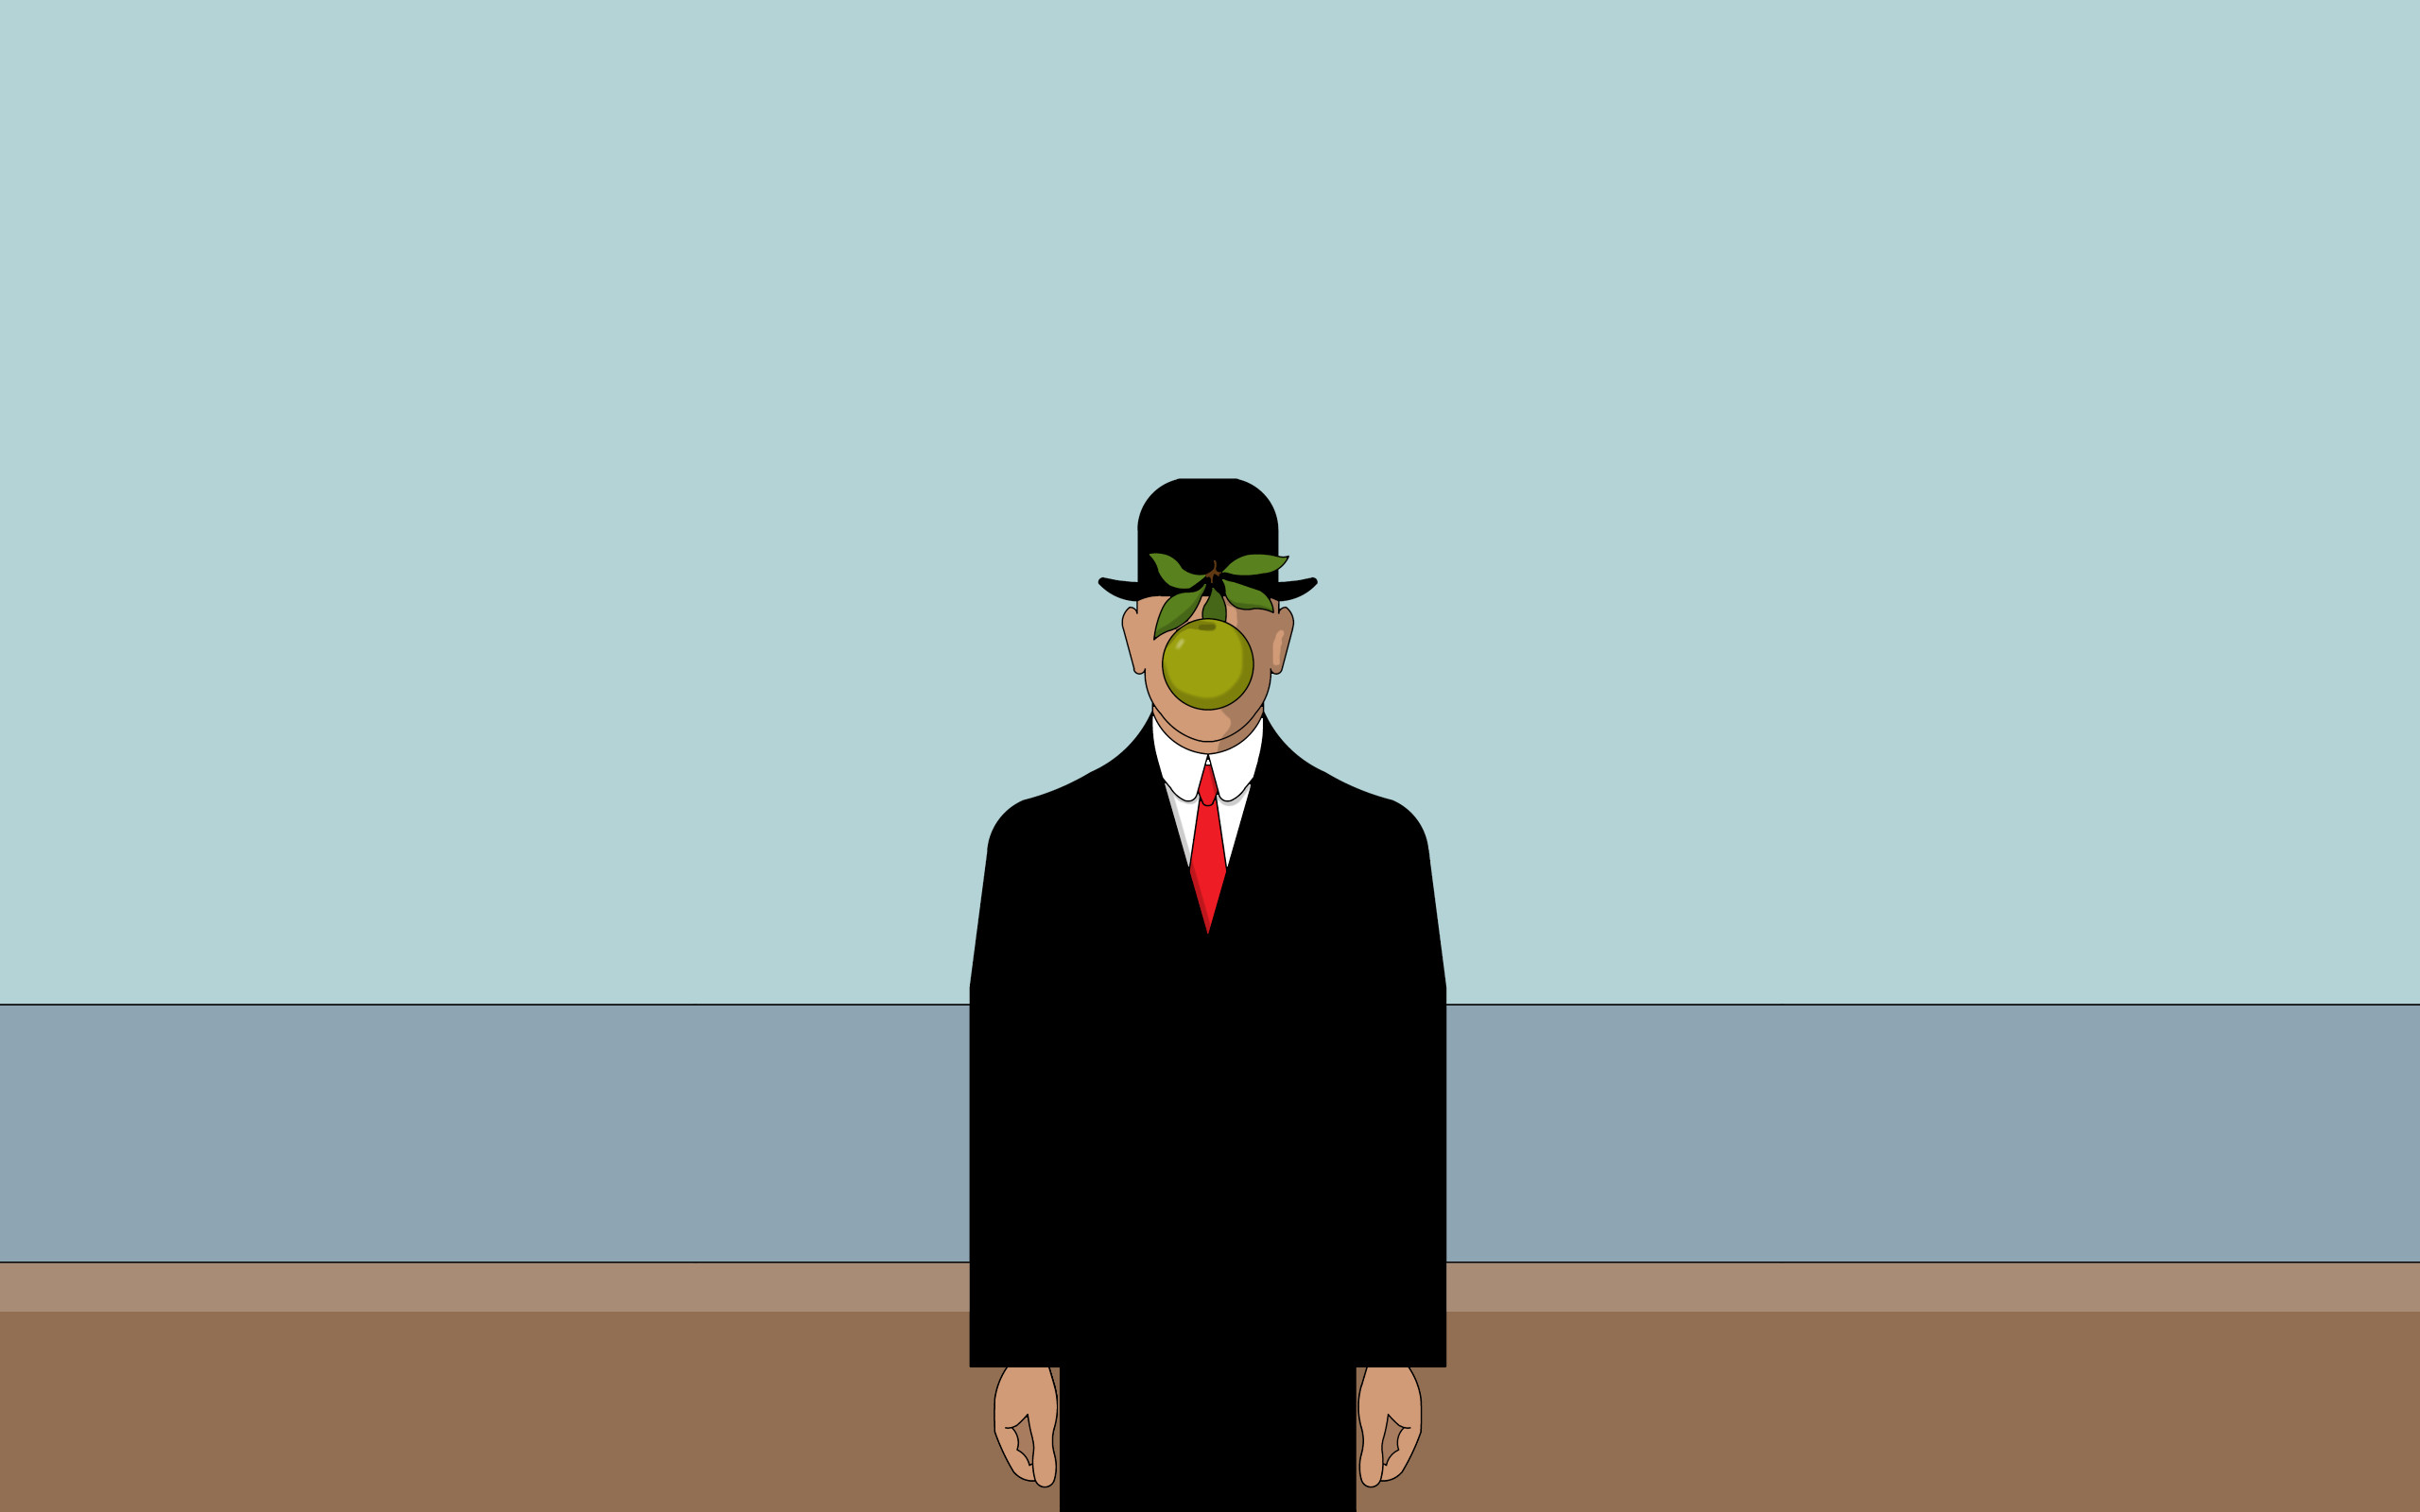 Rene Magritte Painting. How to set wallpaper on your desktop?  Click the download link from above and set the wallpaper on the desktop  from your …